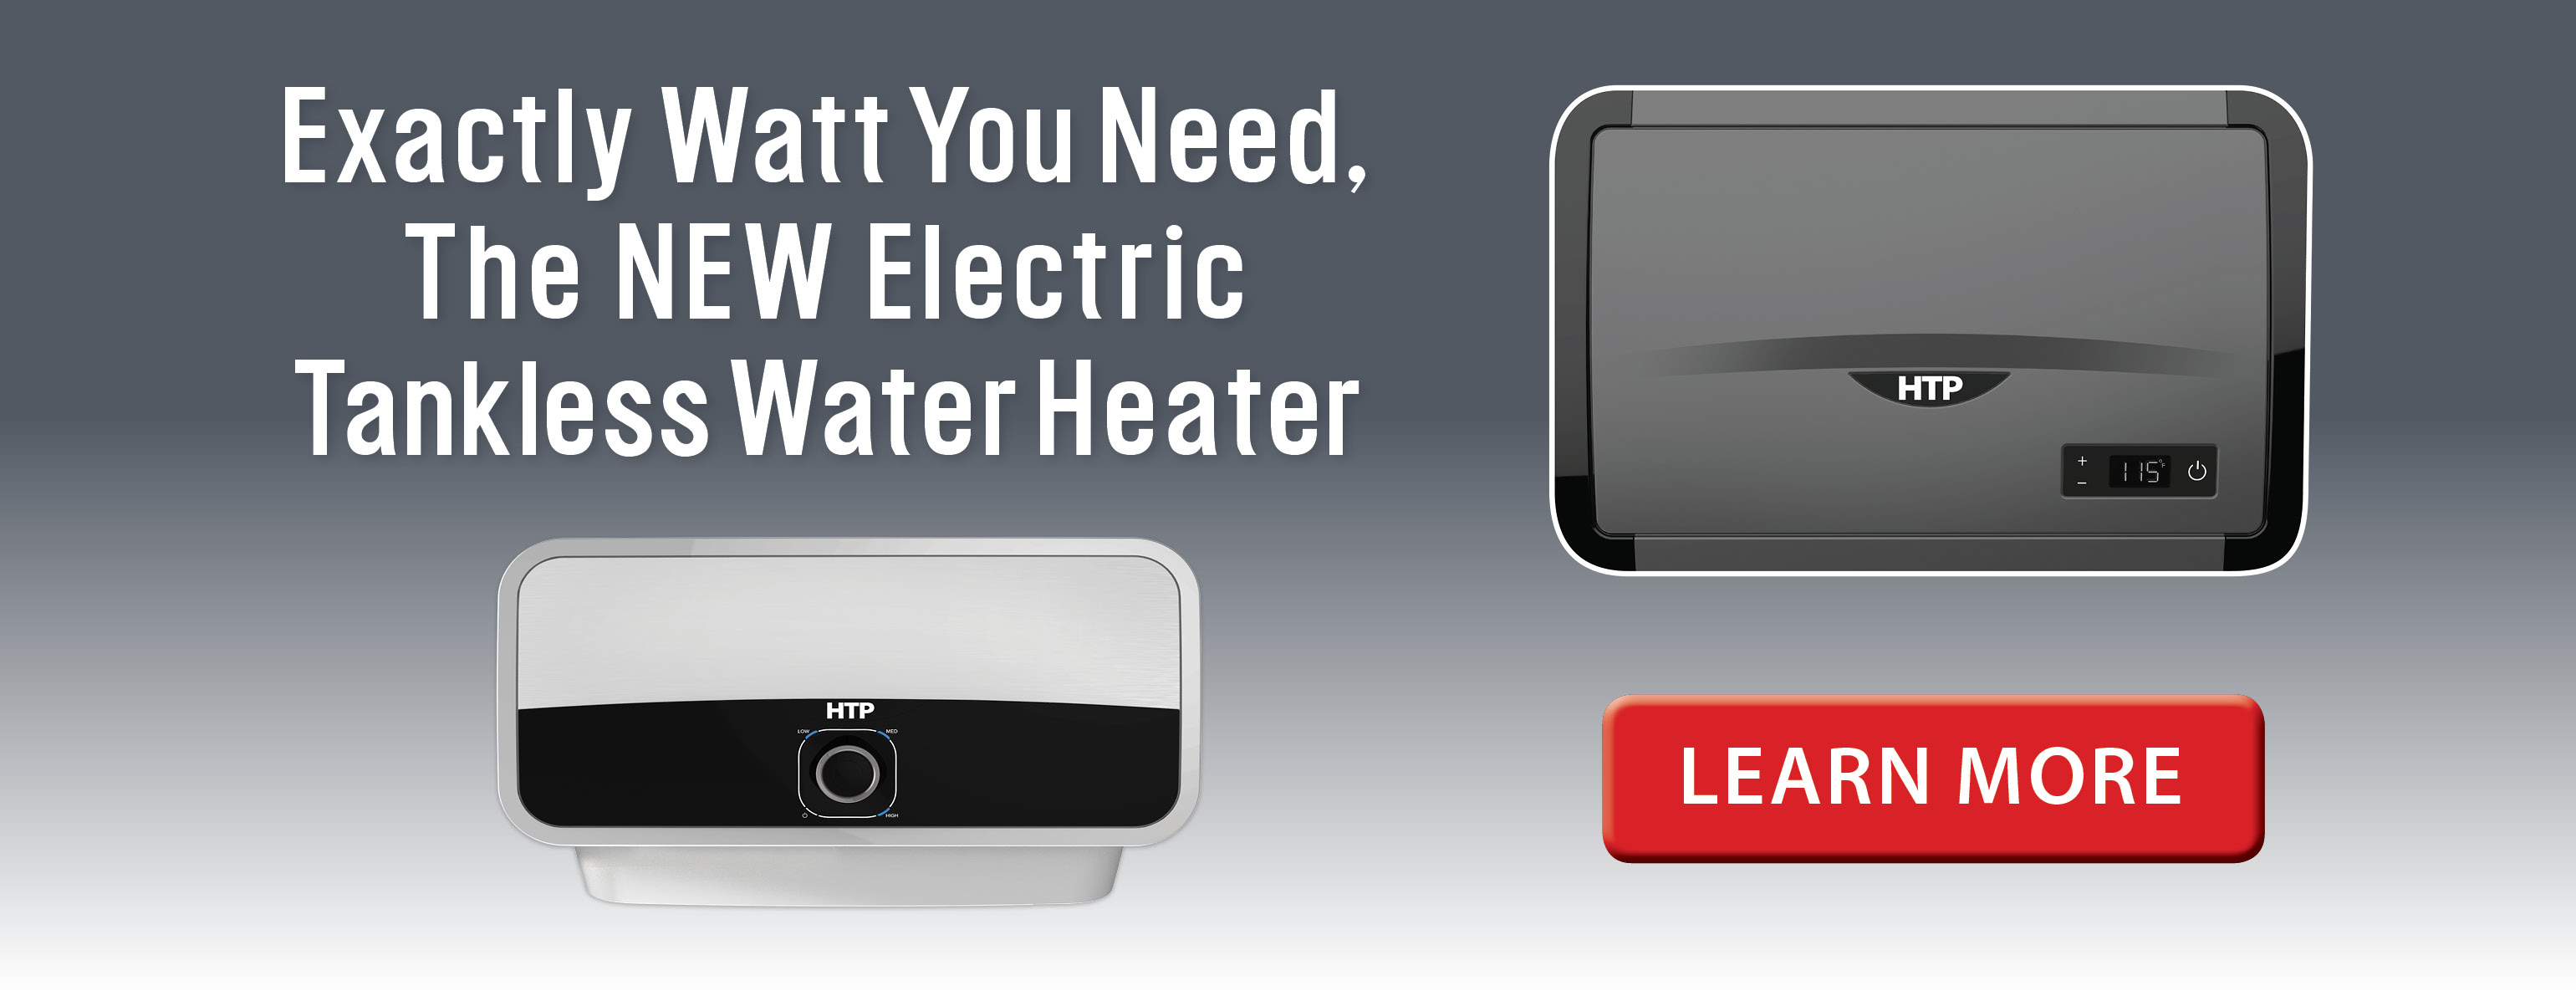 Manufacture and sale of heaters: a selection of sites